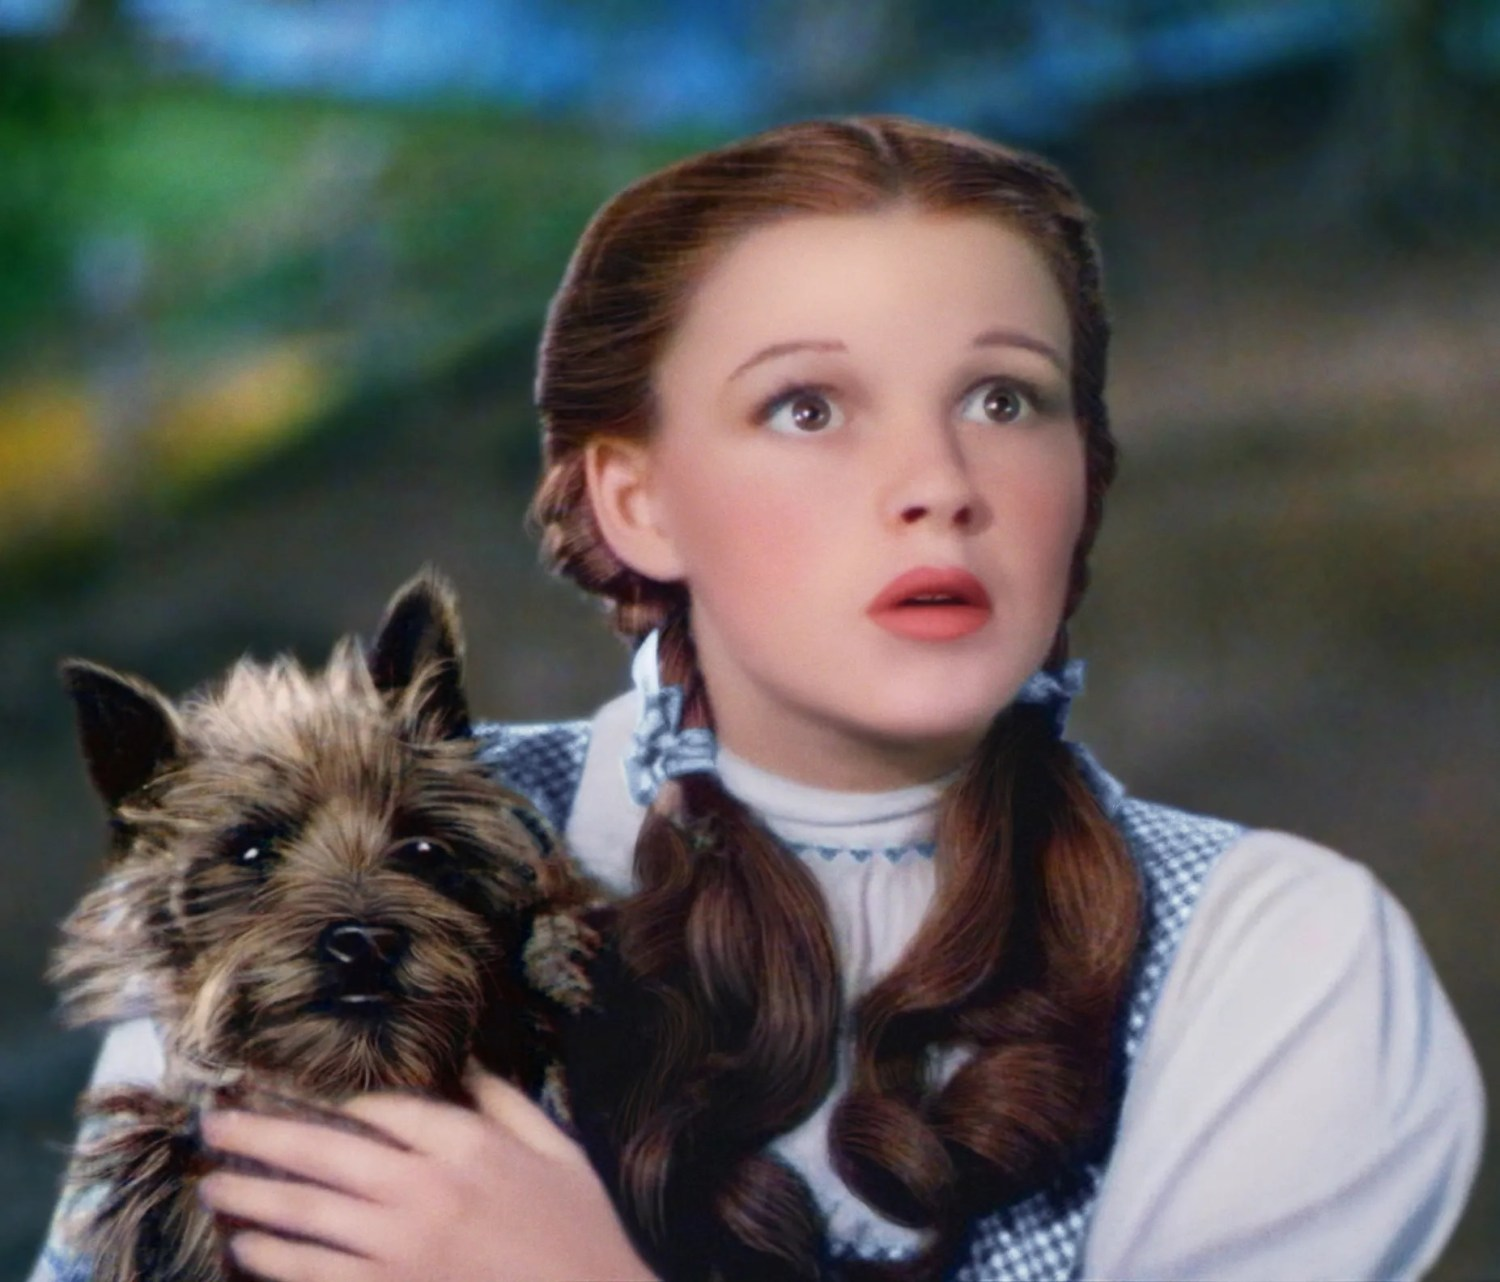 Toto from The Wizard of Oz